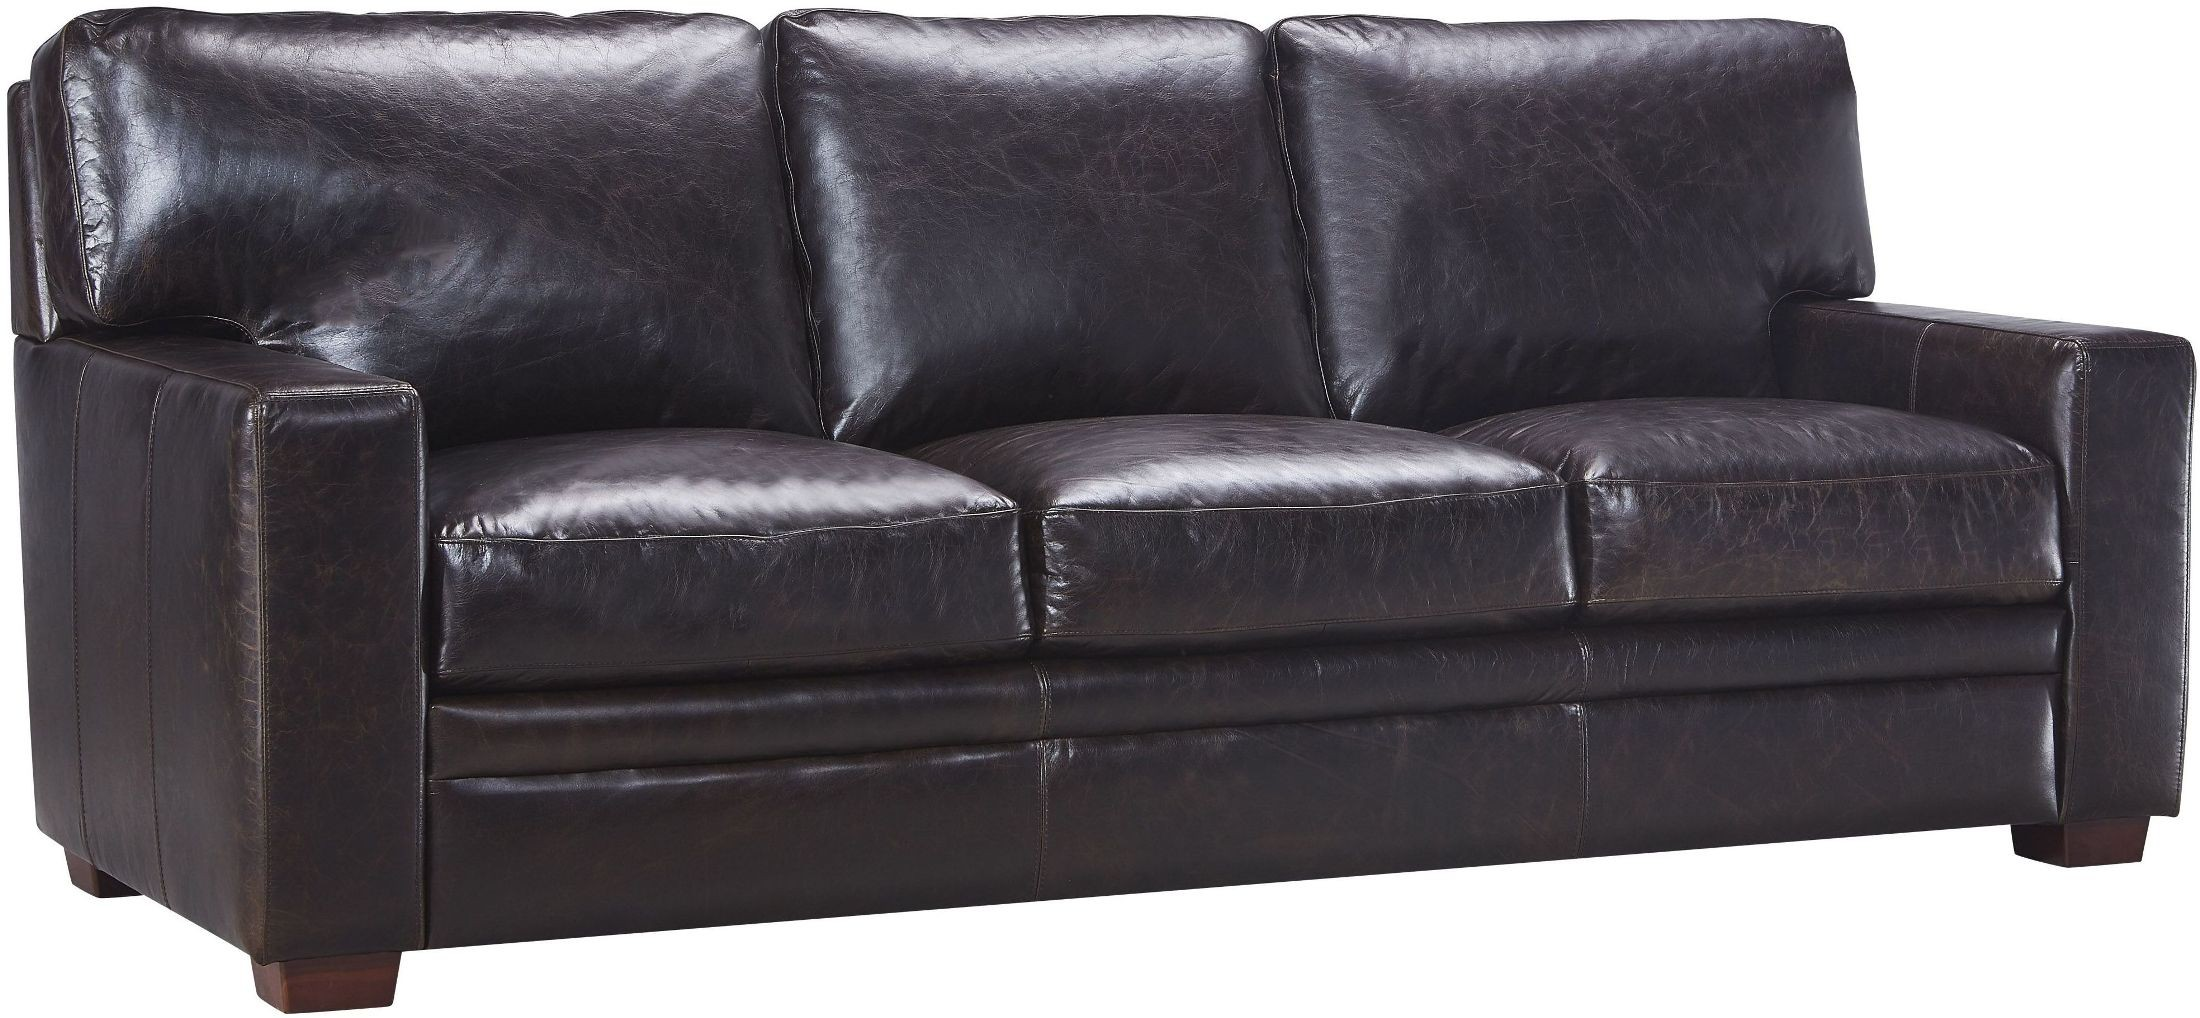 leather italia sofa furniture bed lexington ky georgetowne norman dark brown from 2254788